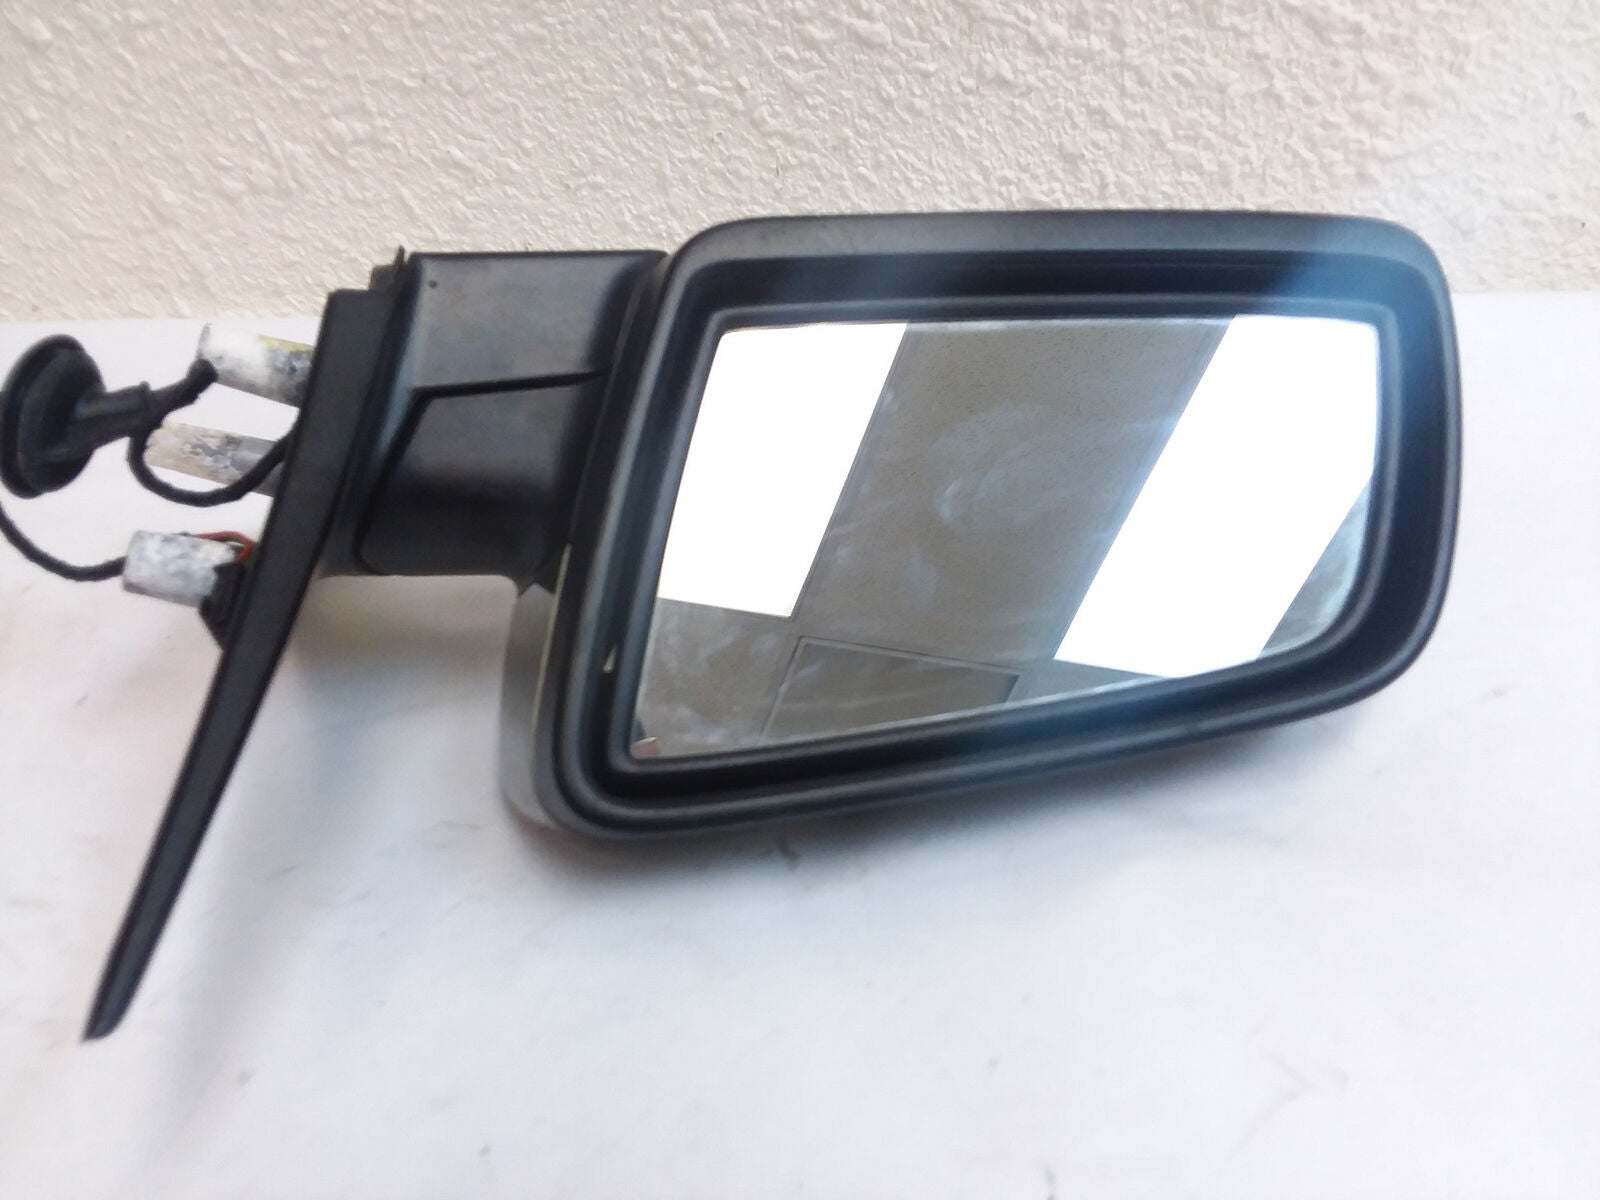 BMW 3 SERIES 330i SEDAN LEFT DRIVER DOOR MIRROR 2006 2007 2008 OEM